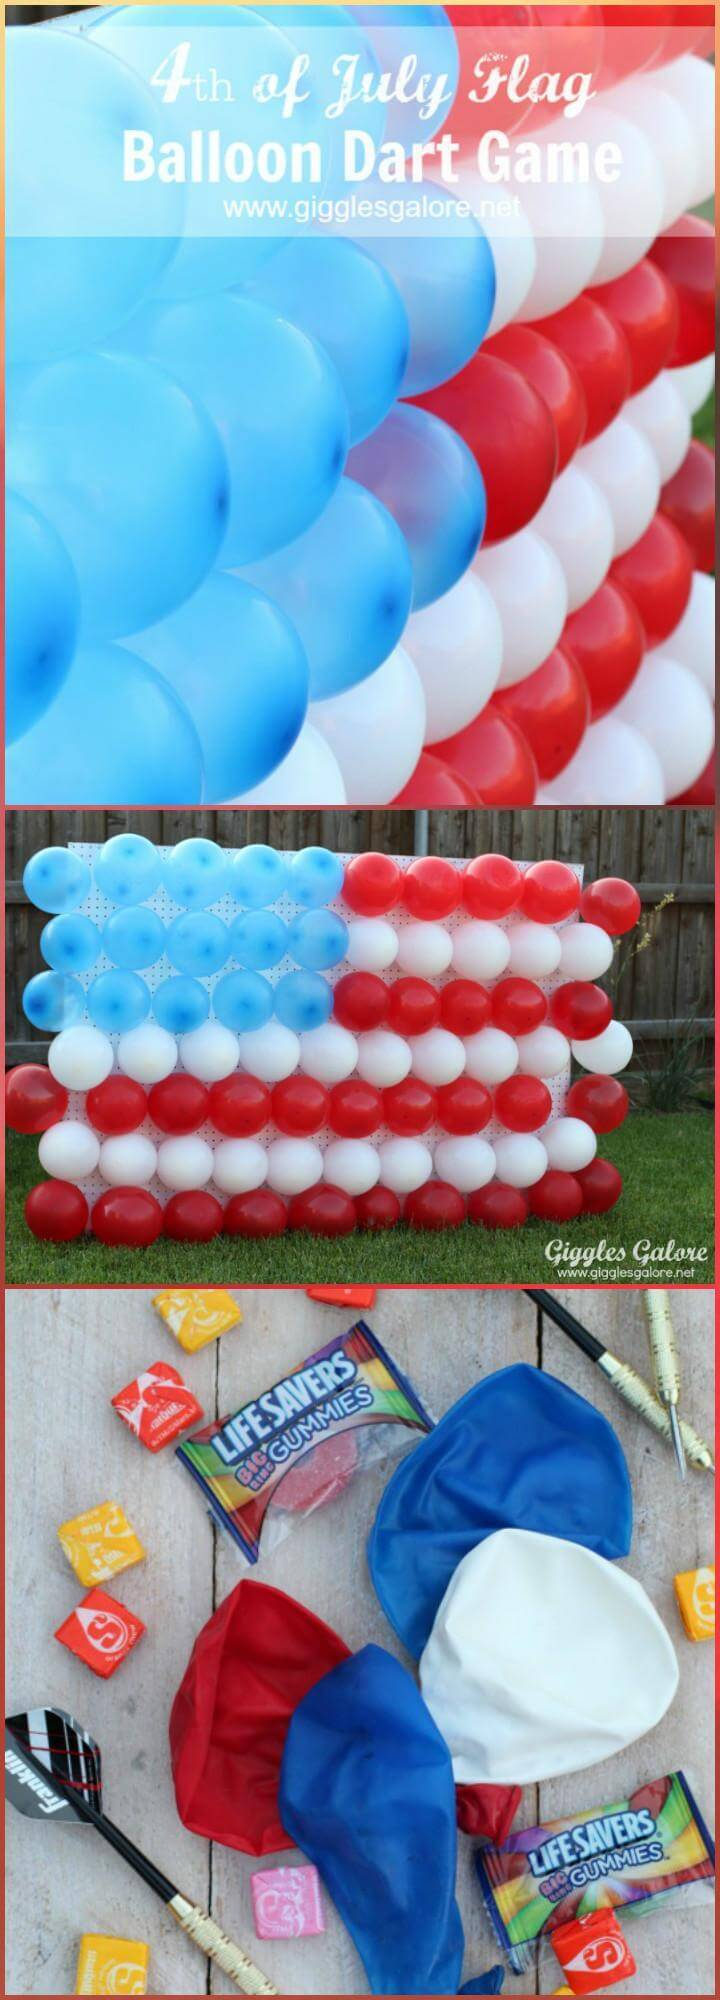 DIY 4th of July Balloon Dart Game